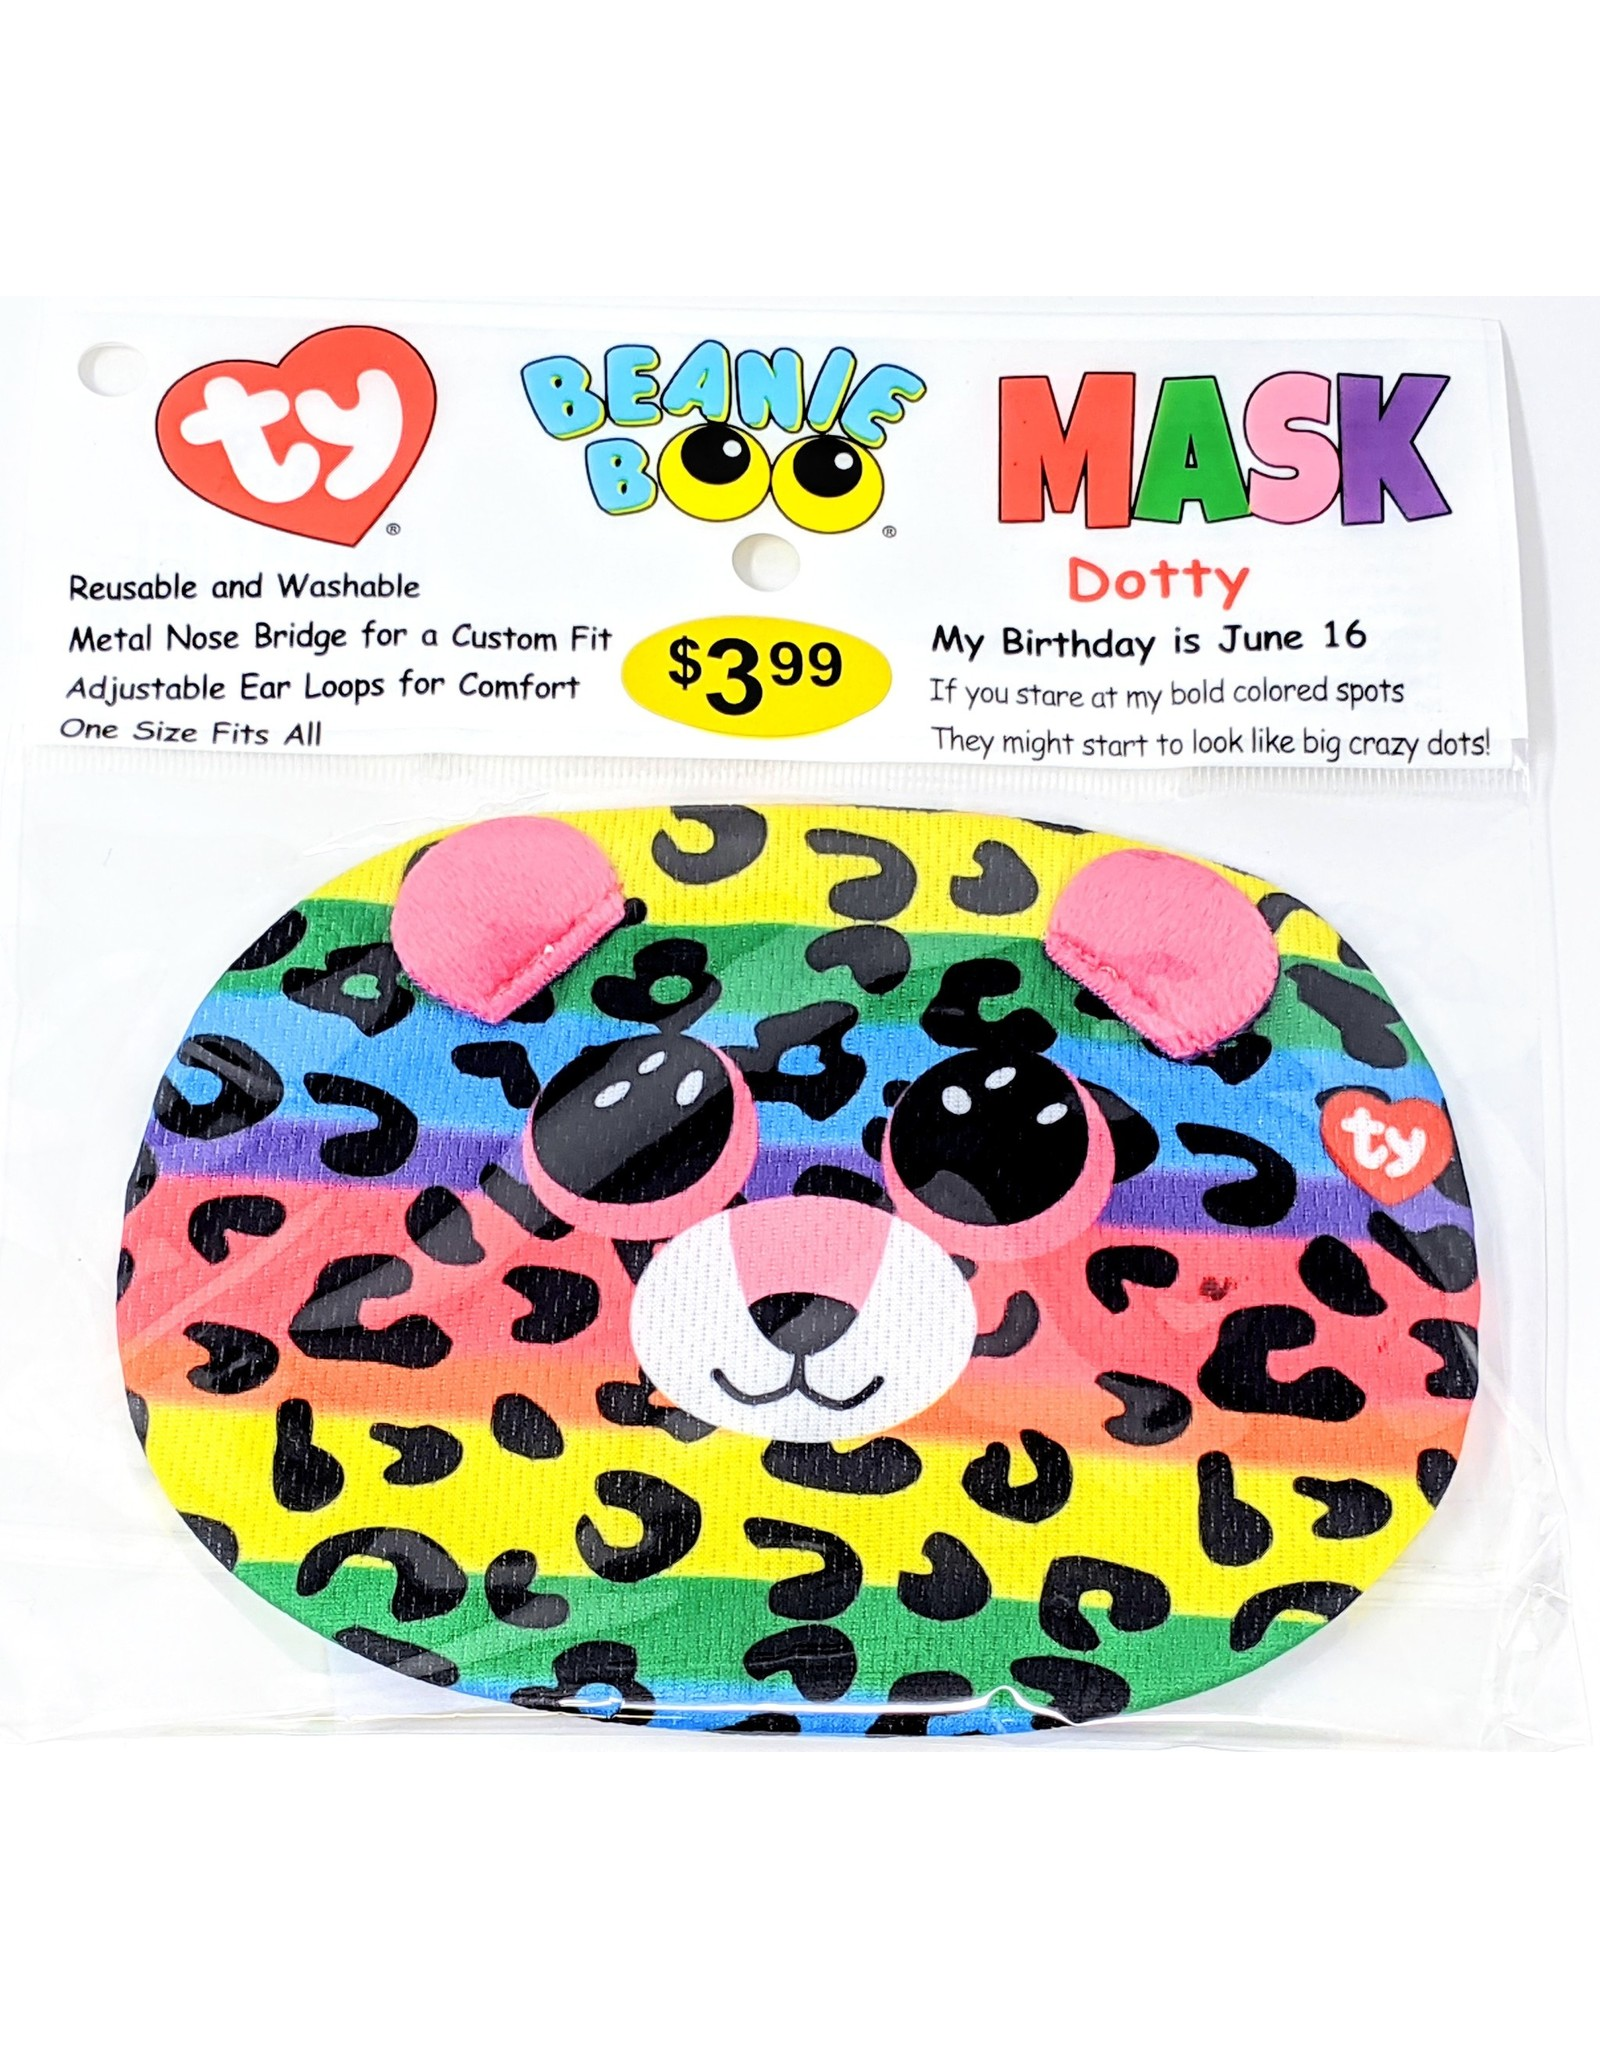 TY Face Mask Beanie Boo - Dotty